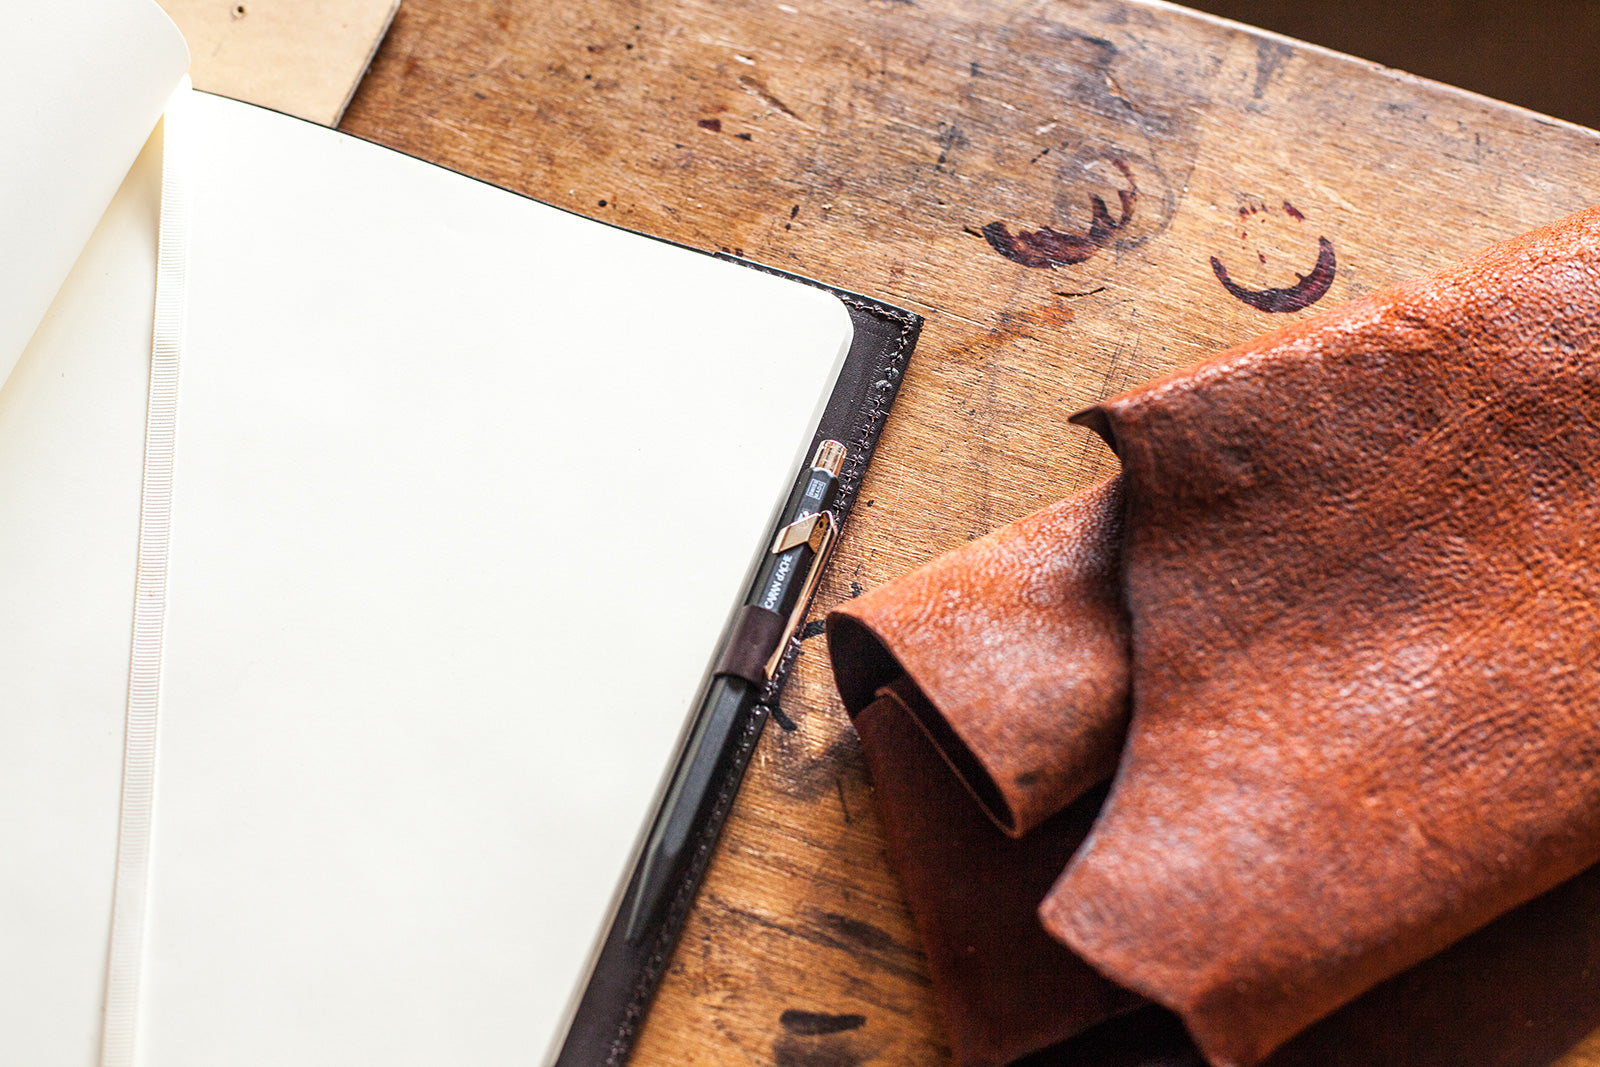 Hand-made Leather Bound XL Moleskine Cahier in Full Grain Italian Leather by Tanner Bates